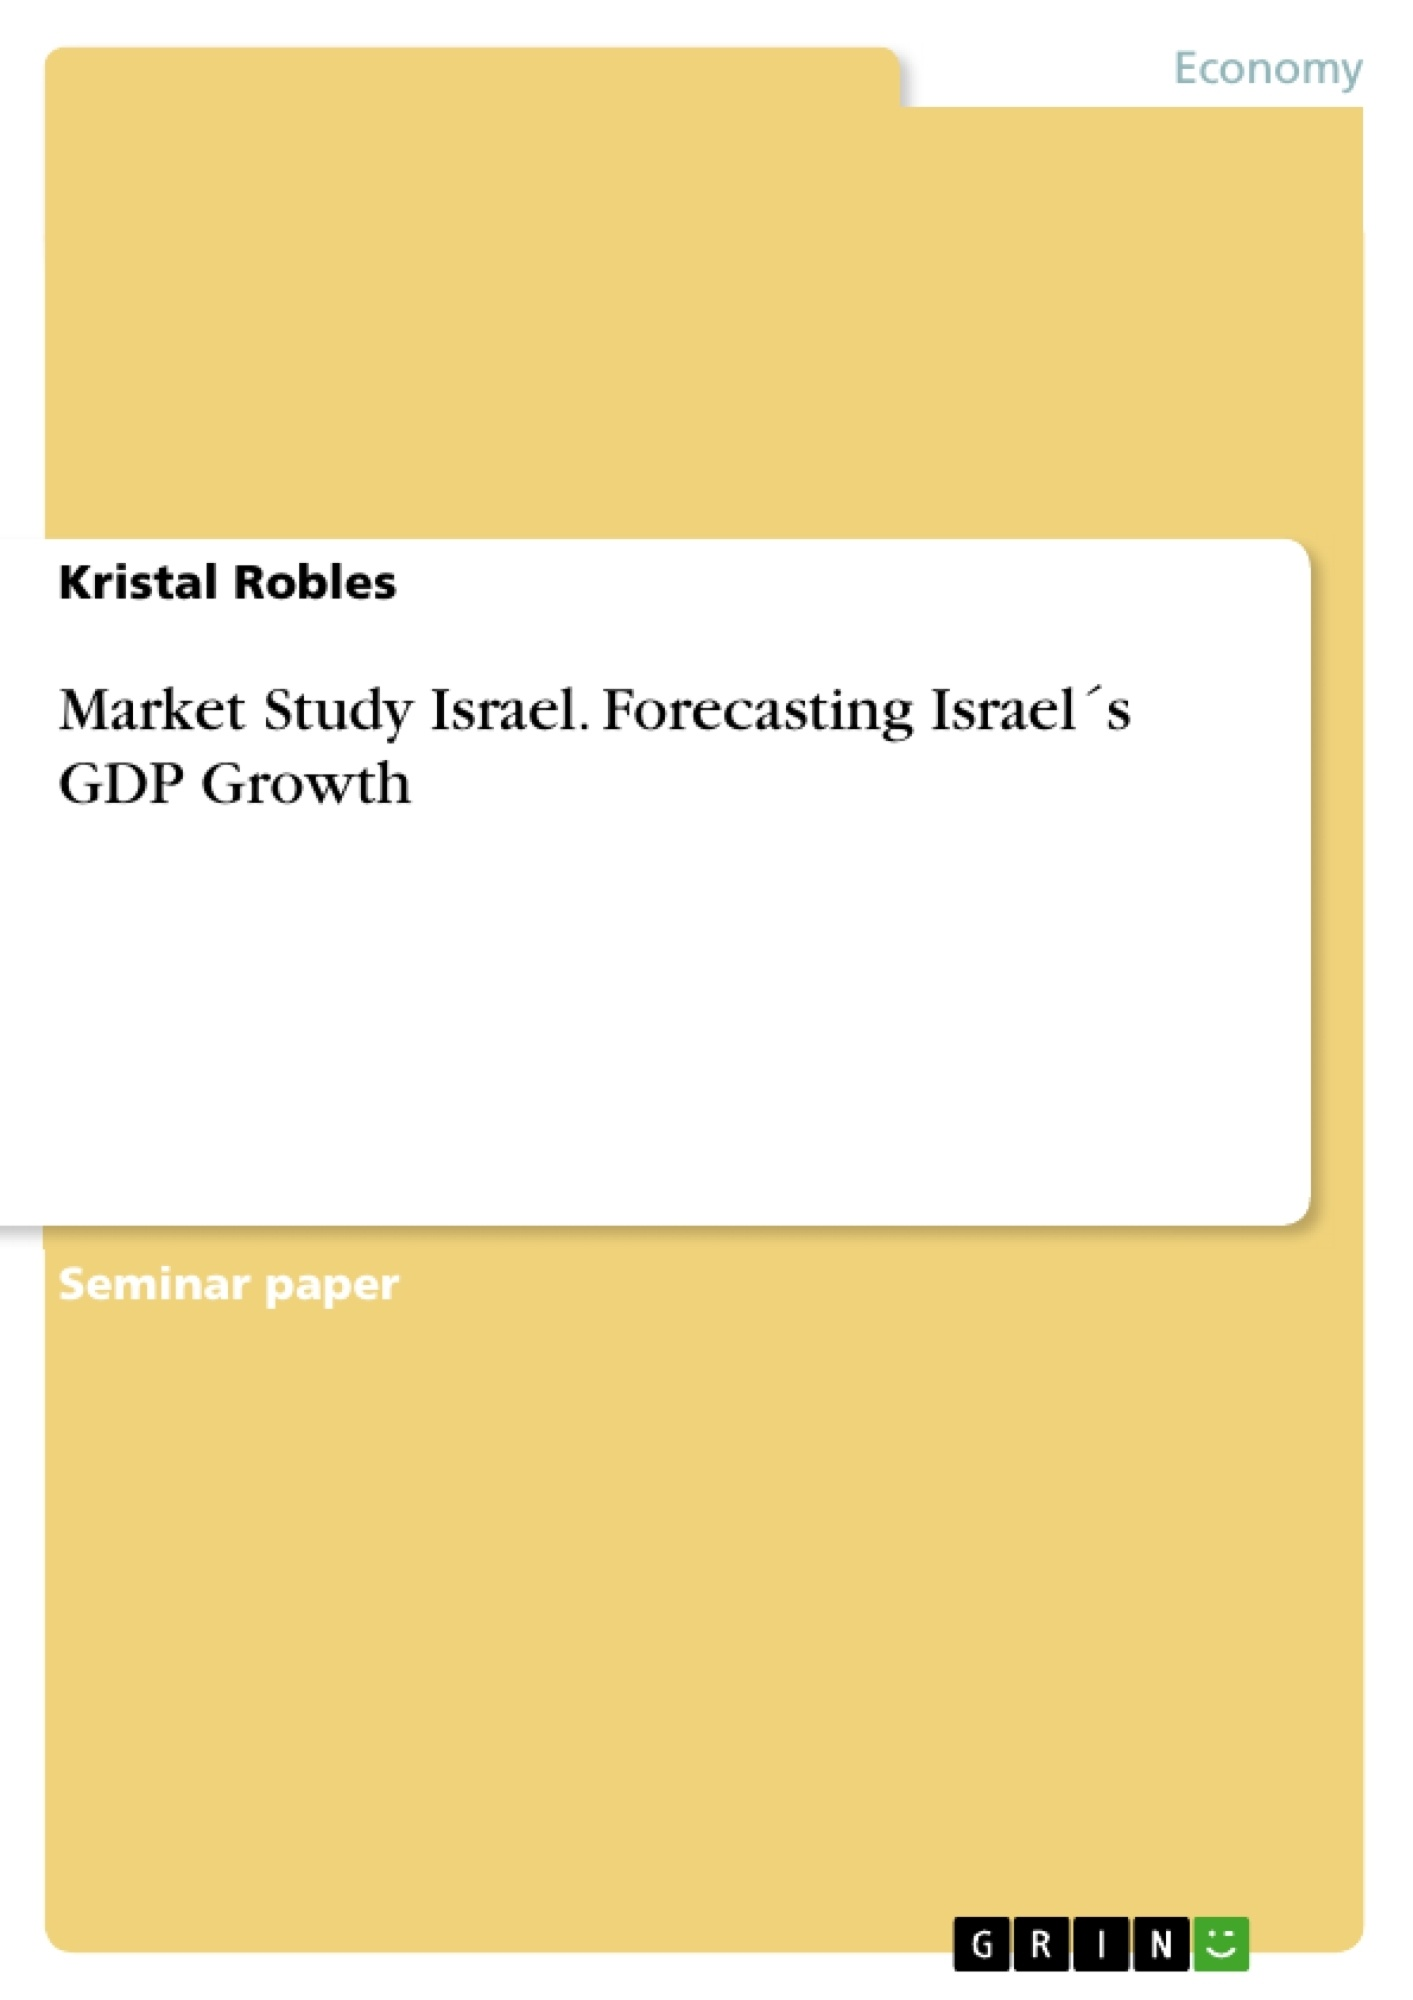 Title: Market Study Israel. Forecasting Israel´s GDP Growth